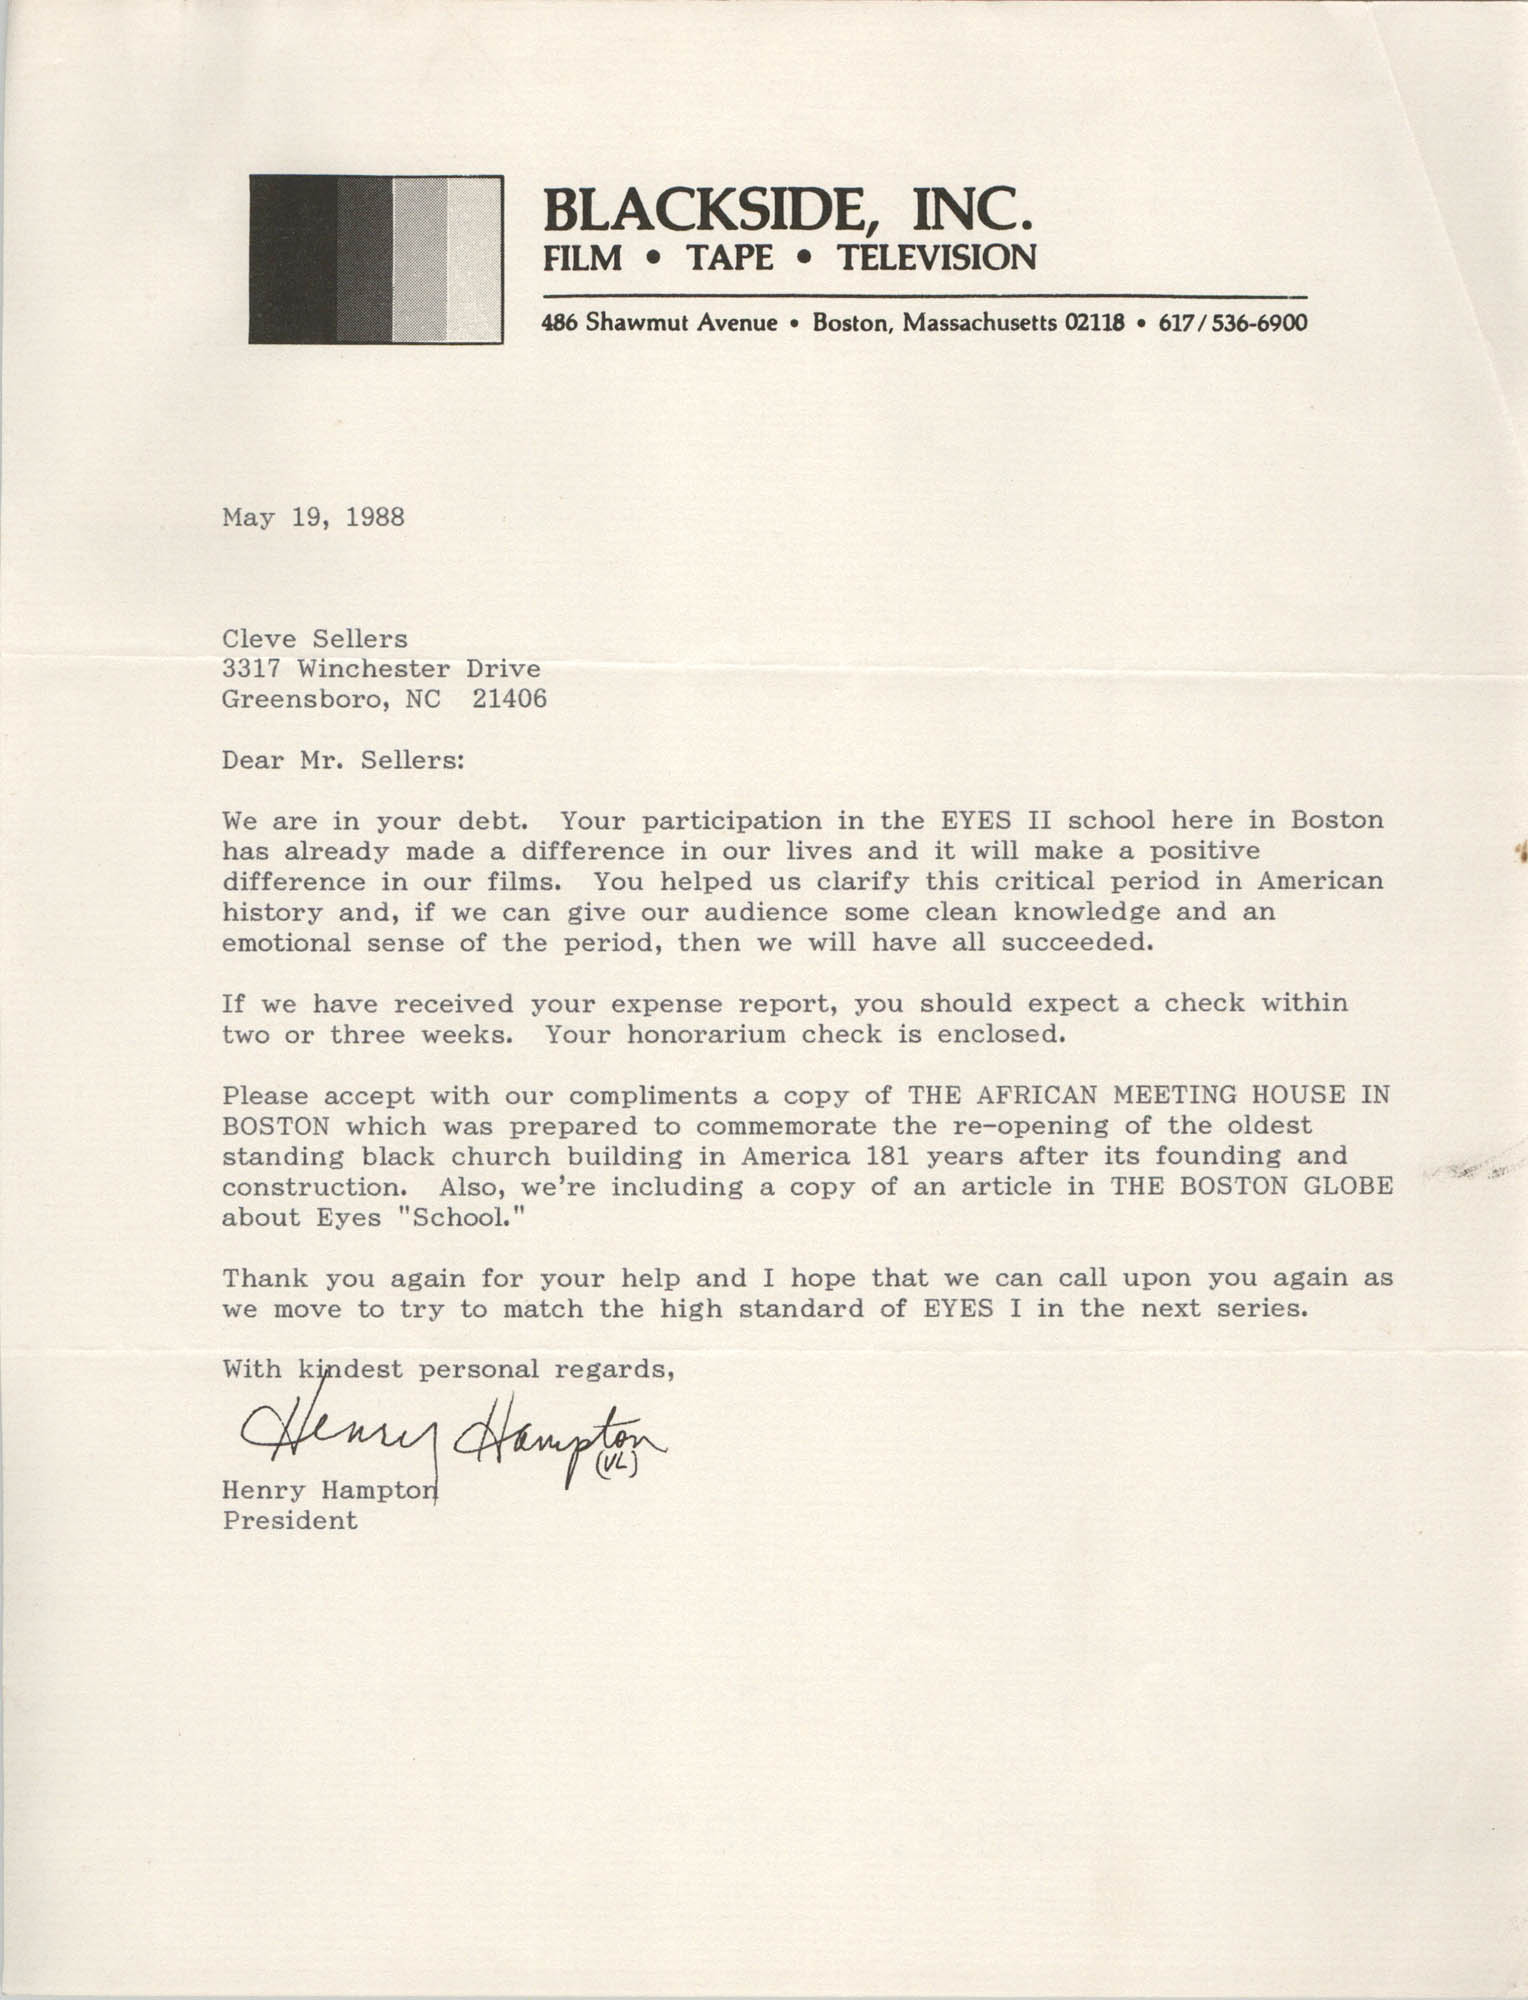 Letter from Henry Hampton to Cleveland Sellers, May 19, 1988